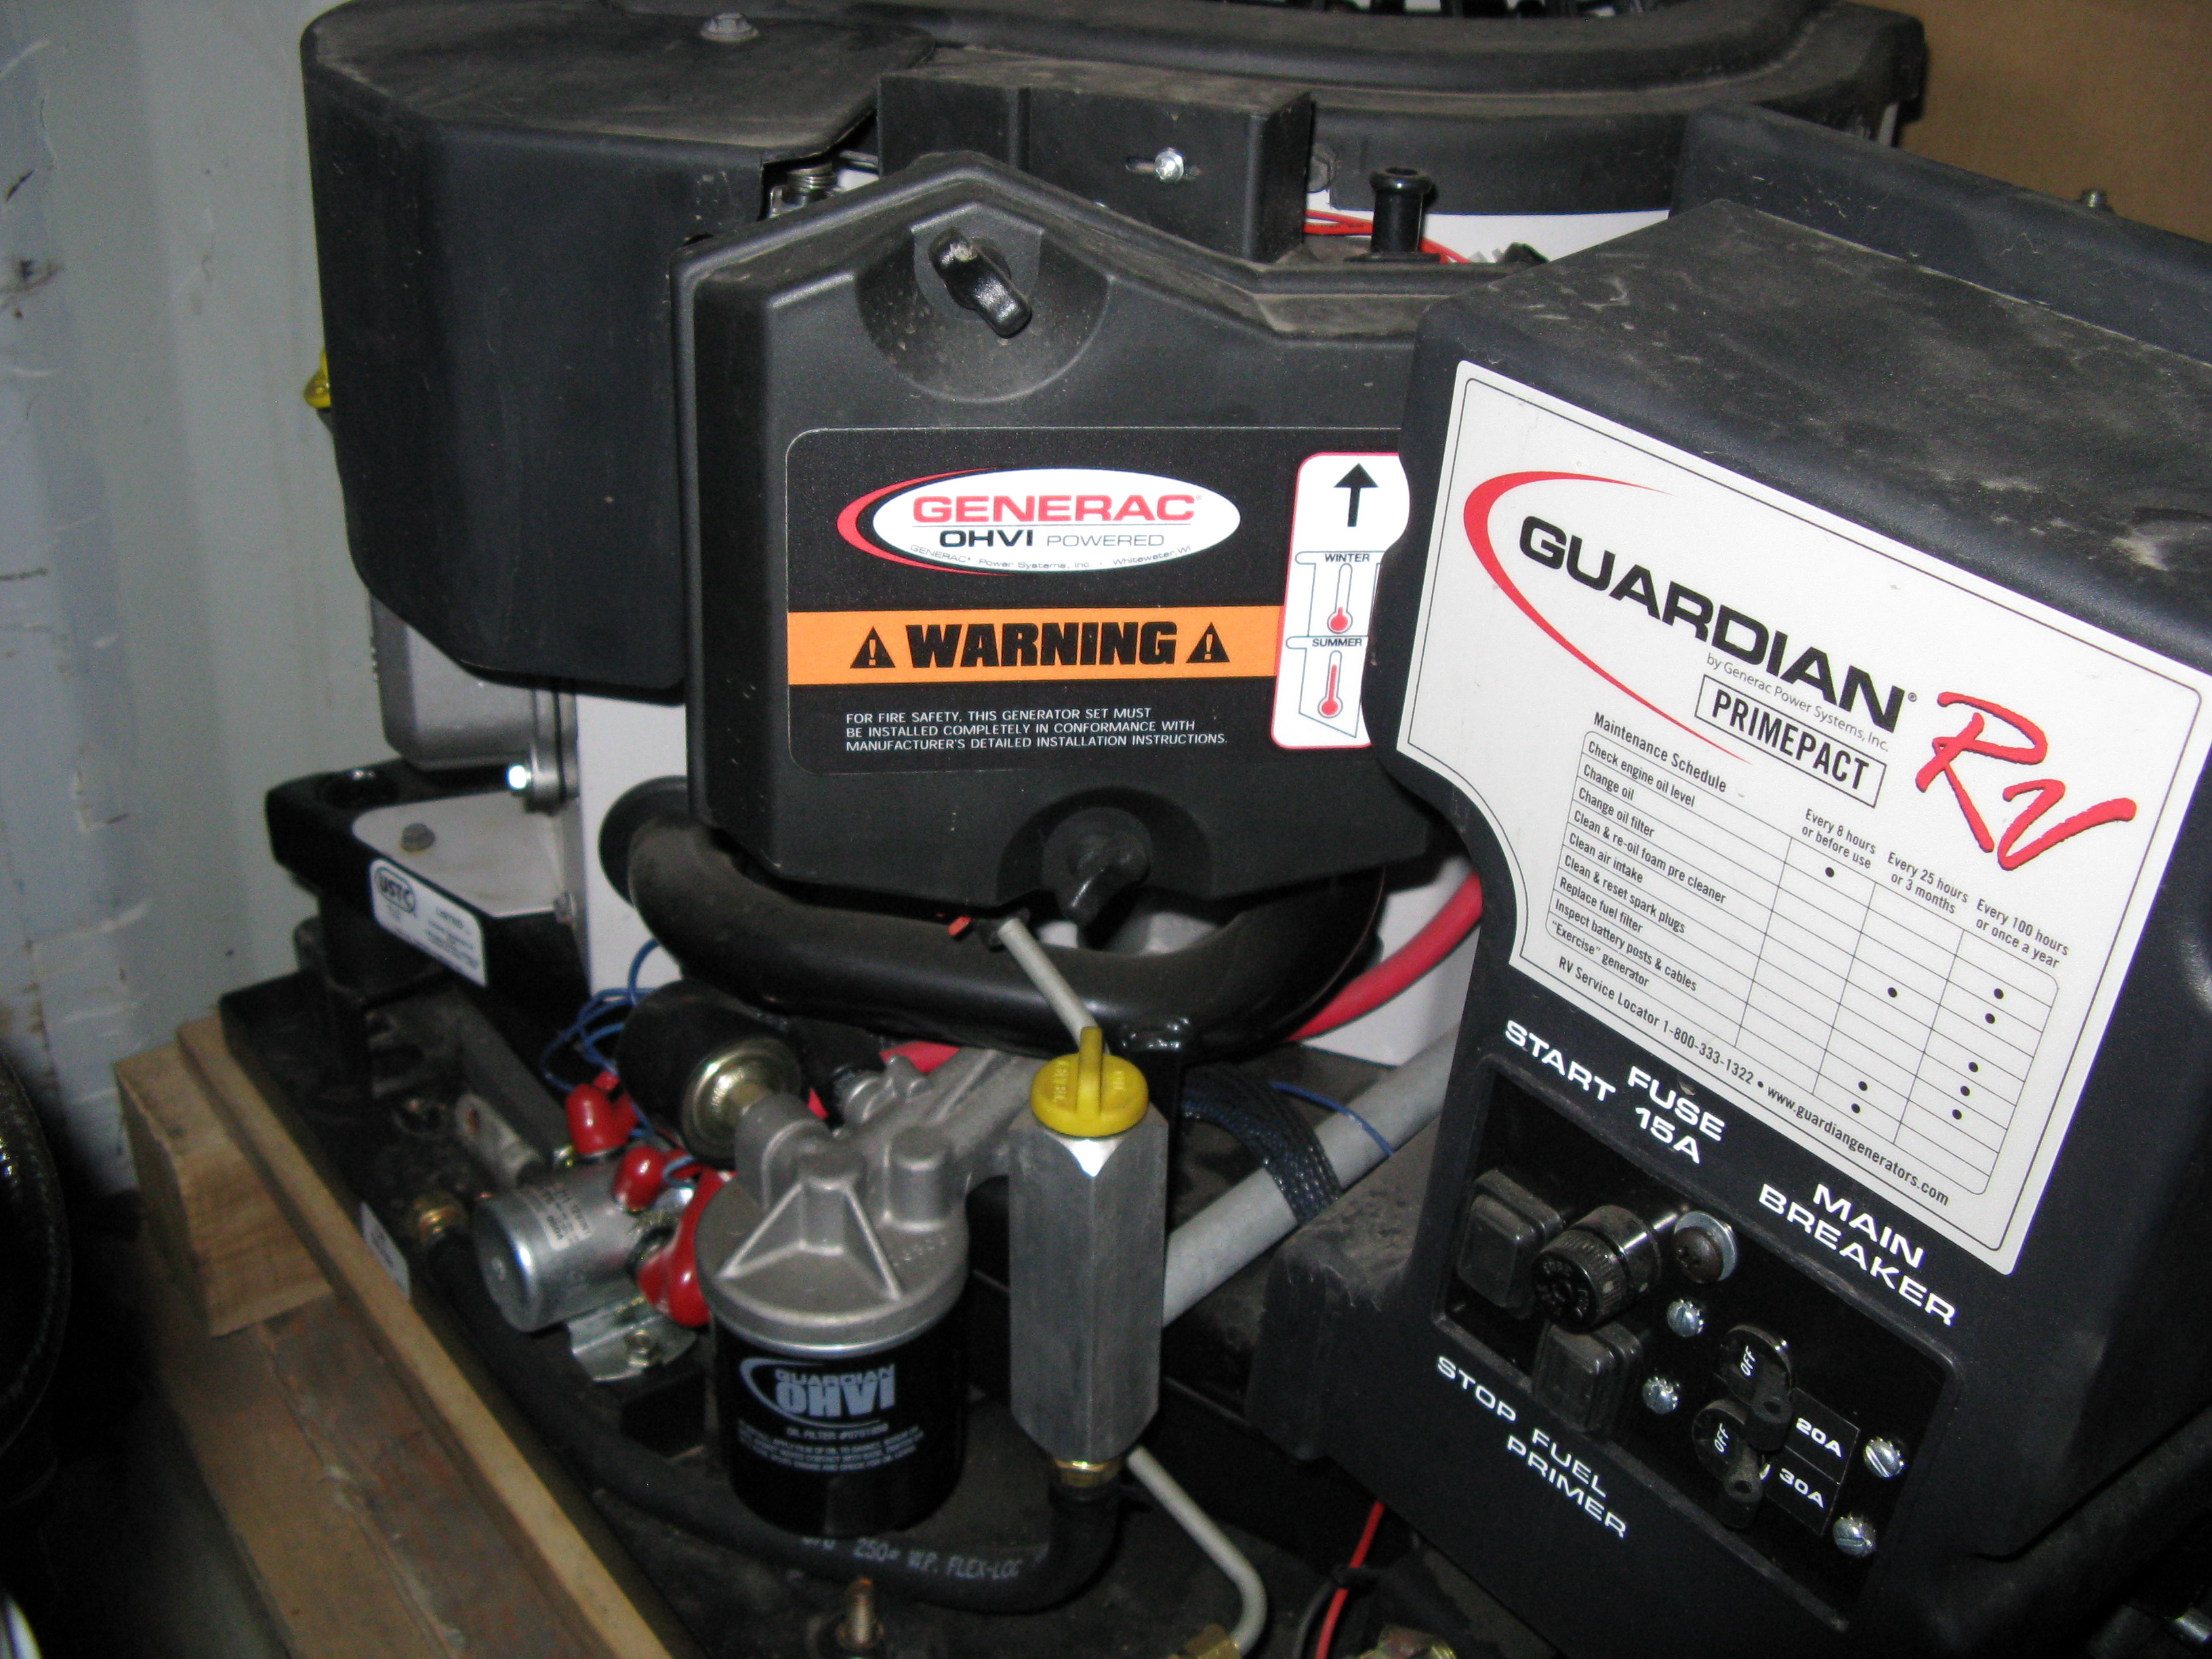 2959619 How To Diagnose Starter Solenoid Or Ignition Switch besides Onan 5000 Rv Generator Manual moreover Dynareg in addition 1831120 C5 Ls1 Alternator Wiring Question besides Solar Panels. on tahoe generator wiring diagram